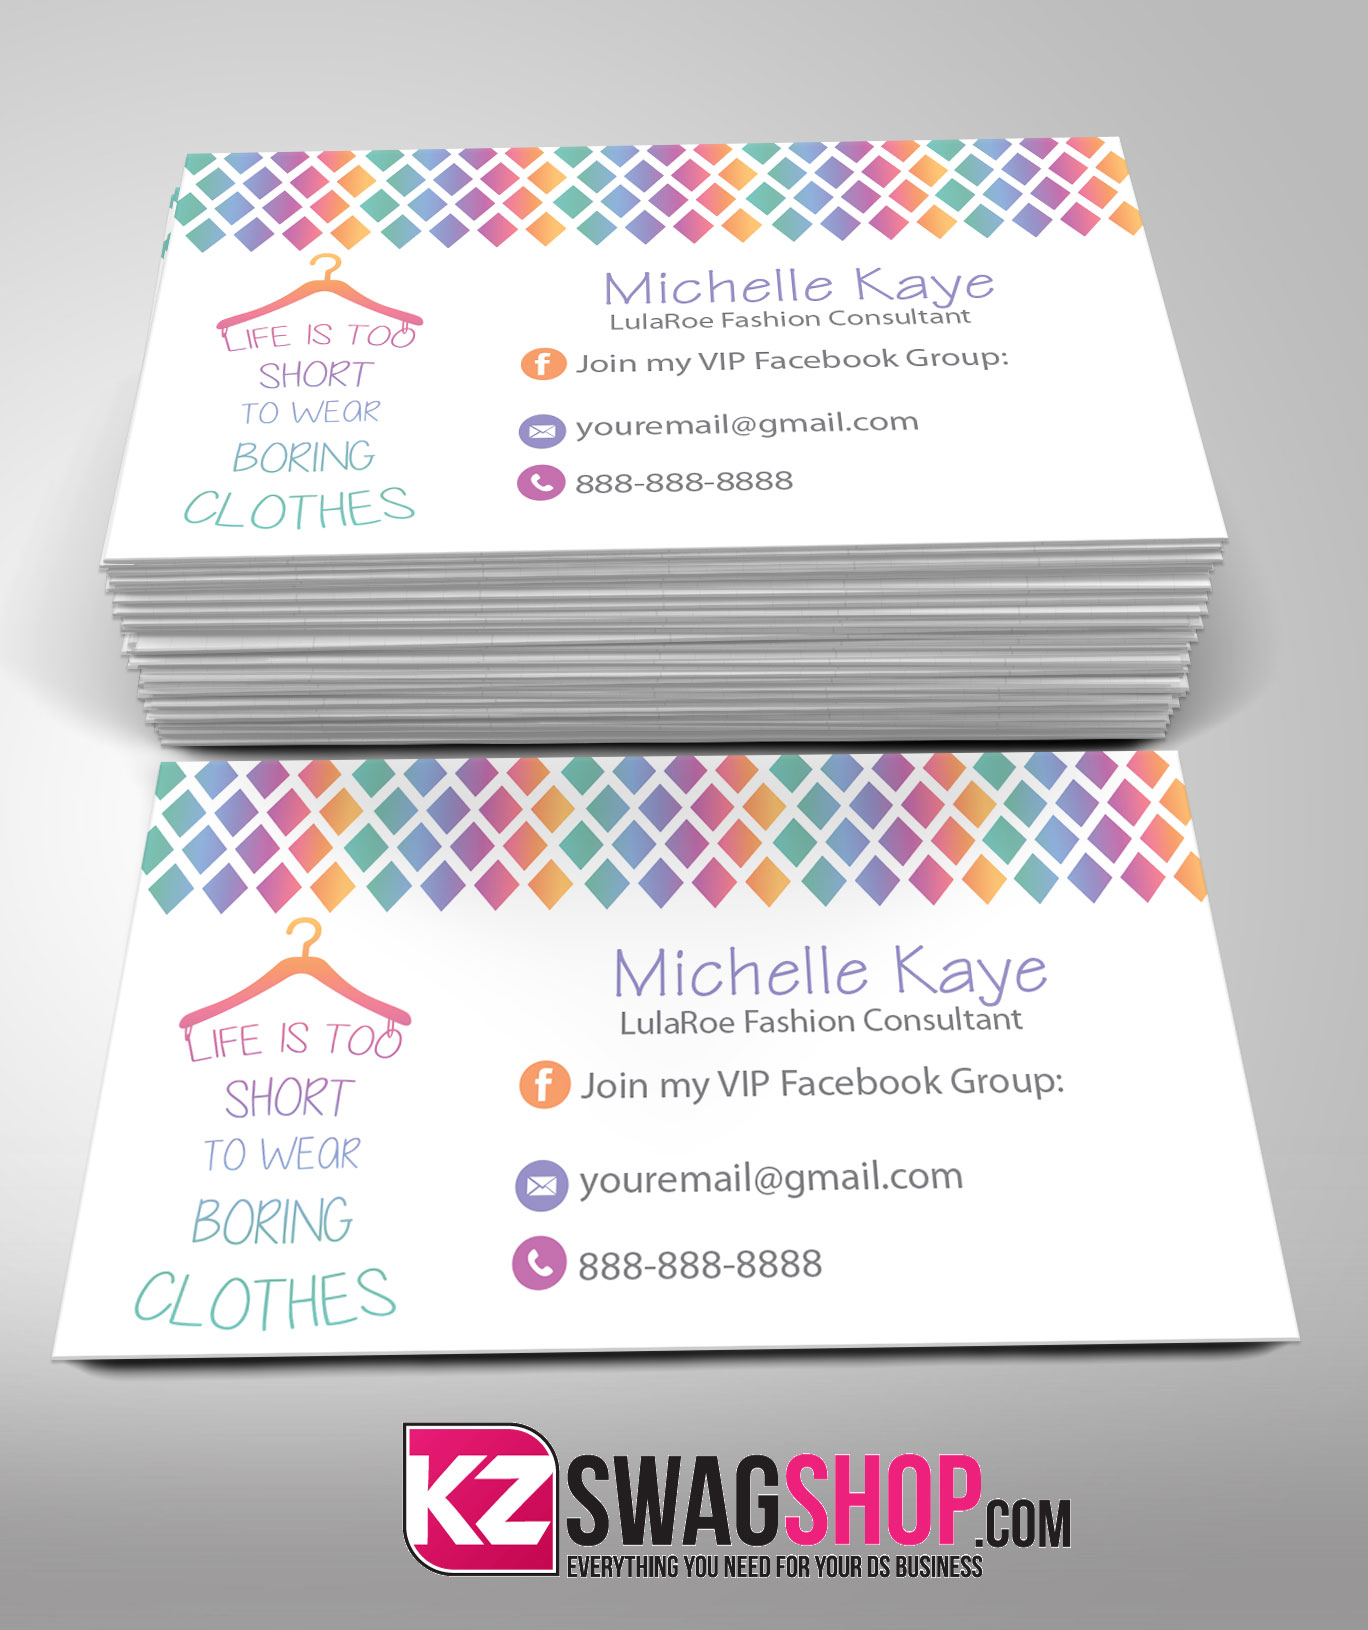 Lularoe business cards 7 kz creative services online for Design online shop